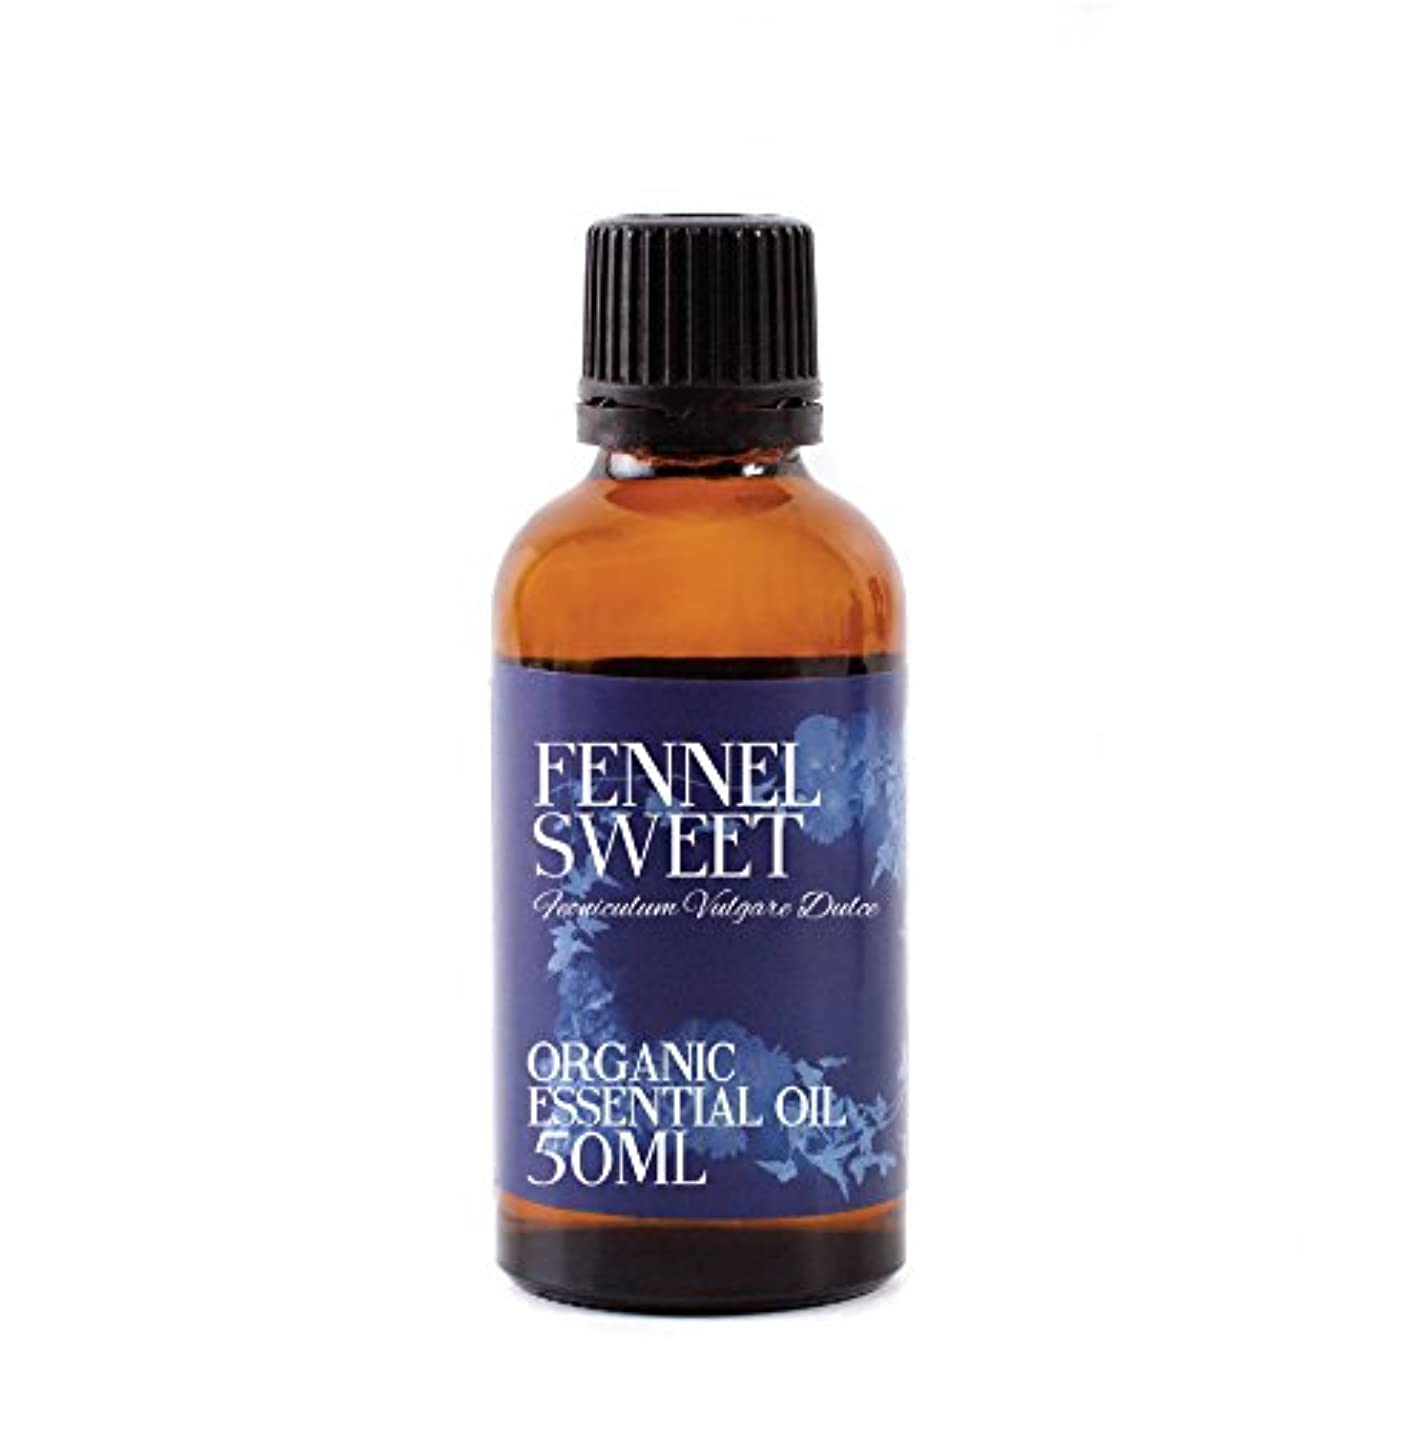 遺棄された算術バナーMystic Moments | Fennel Sweet Organic Essential Oil - 50ml - 100% Pure